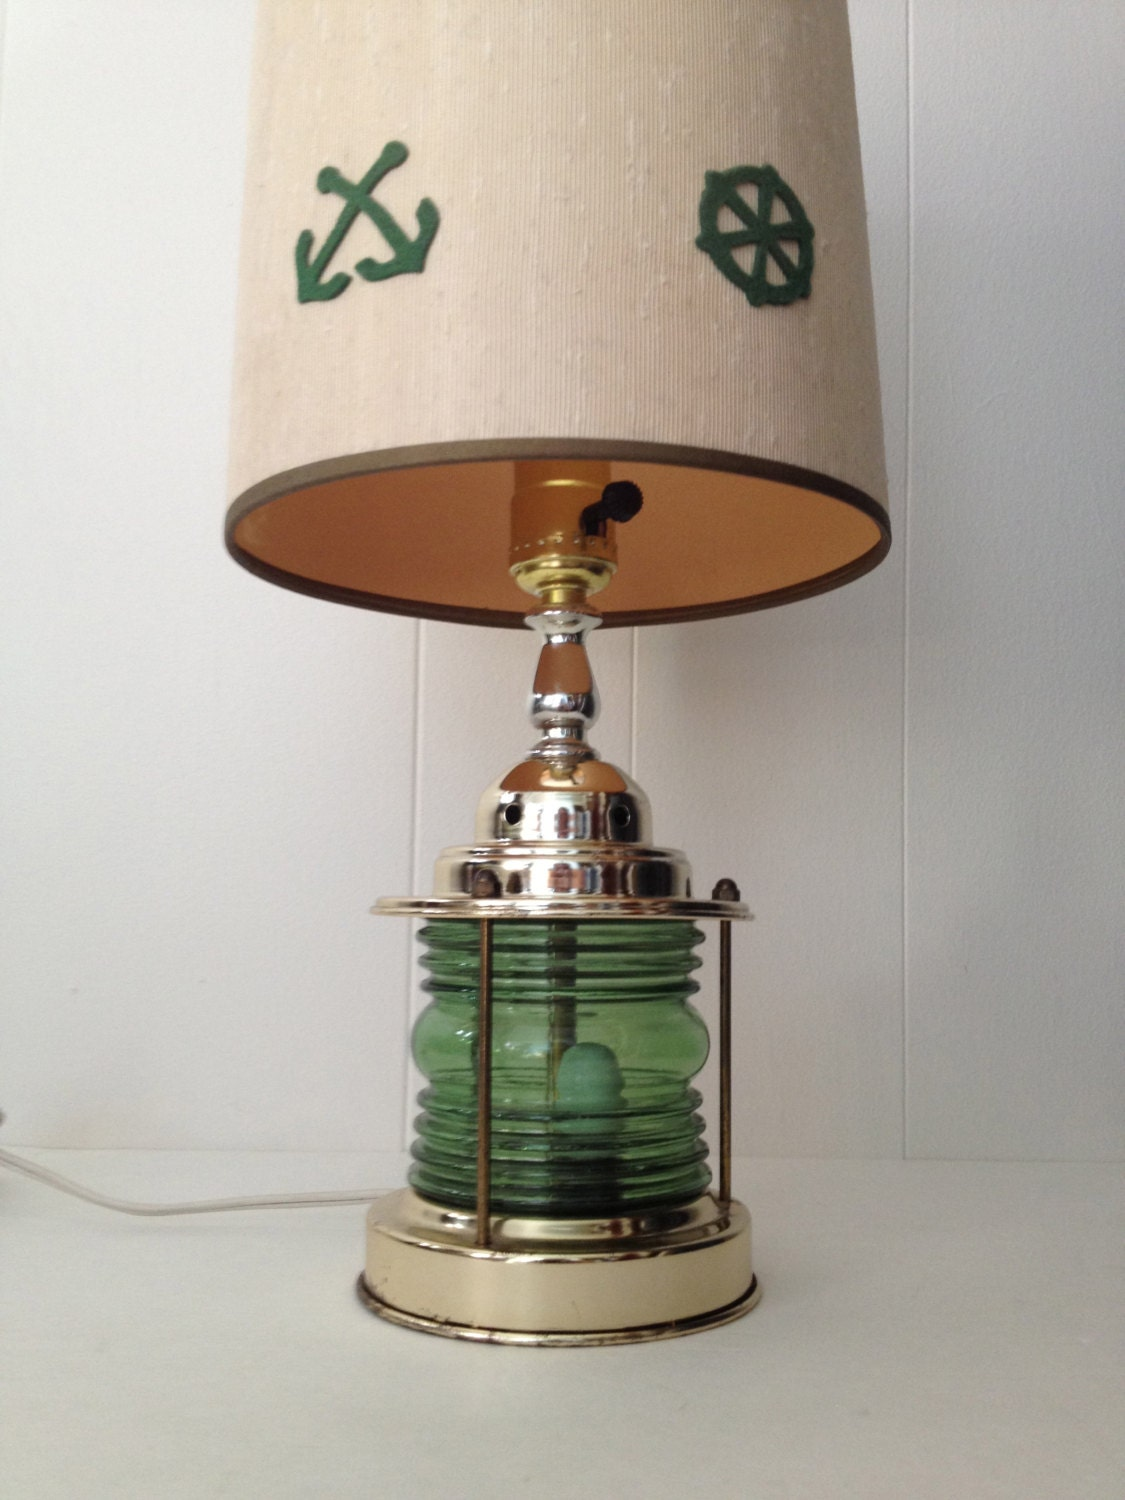 vintage nautical lantern table lamp light w decorative boat shade w. Black Bedroom Furniture Sets. Home Design Ideas